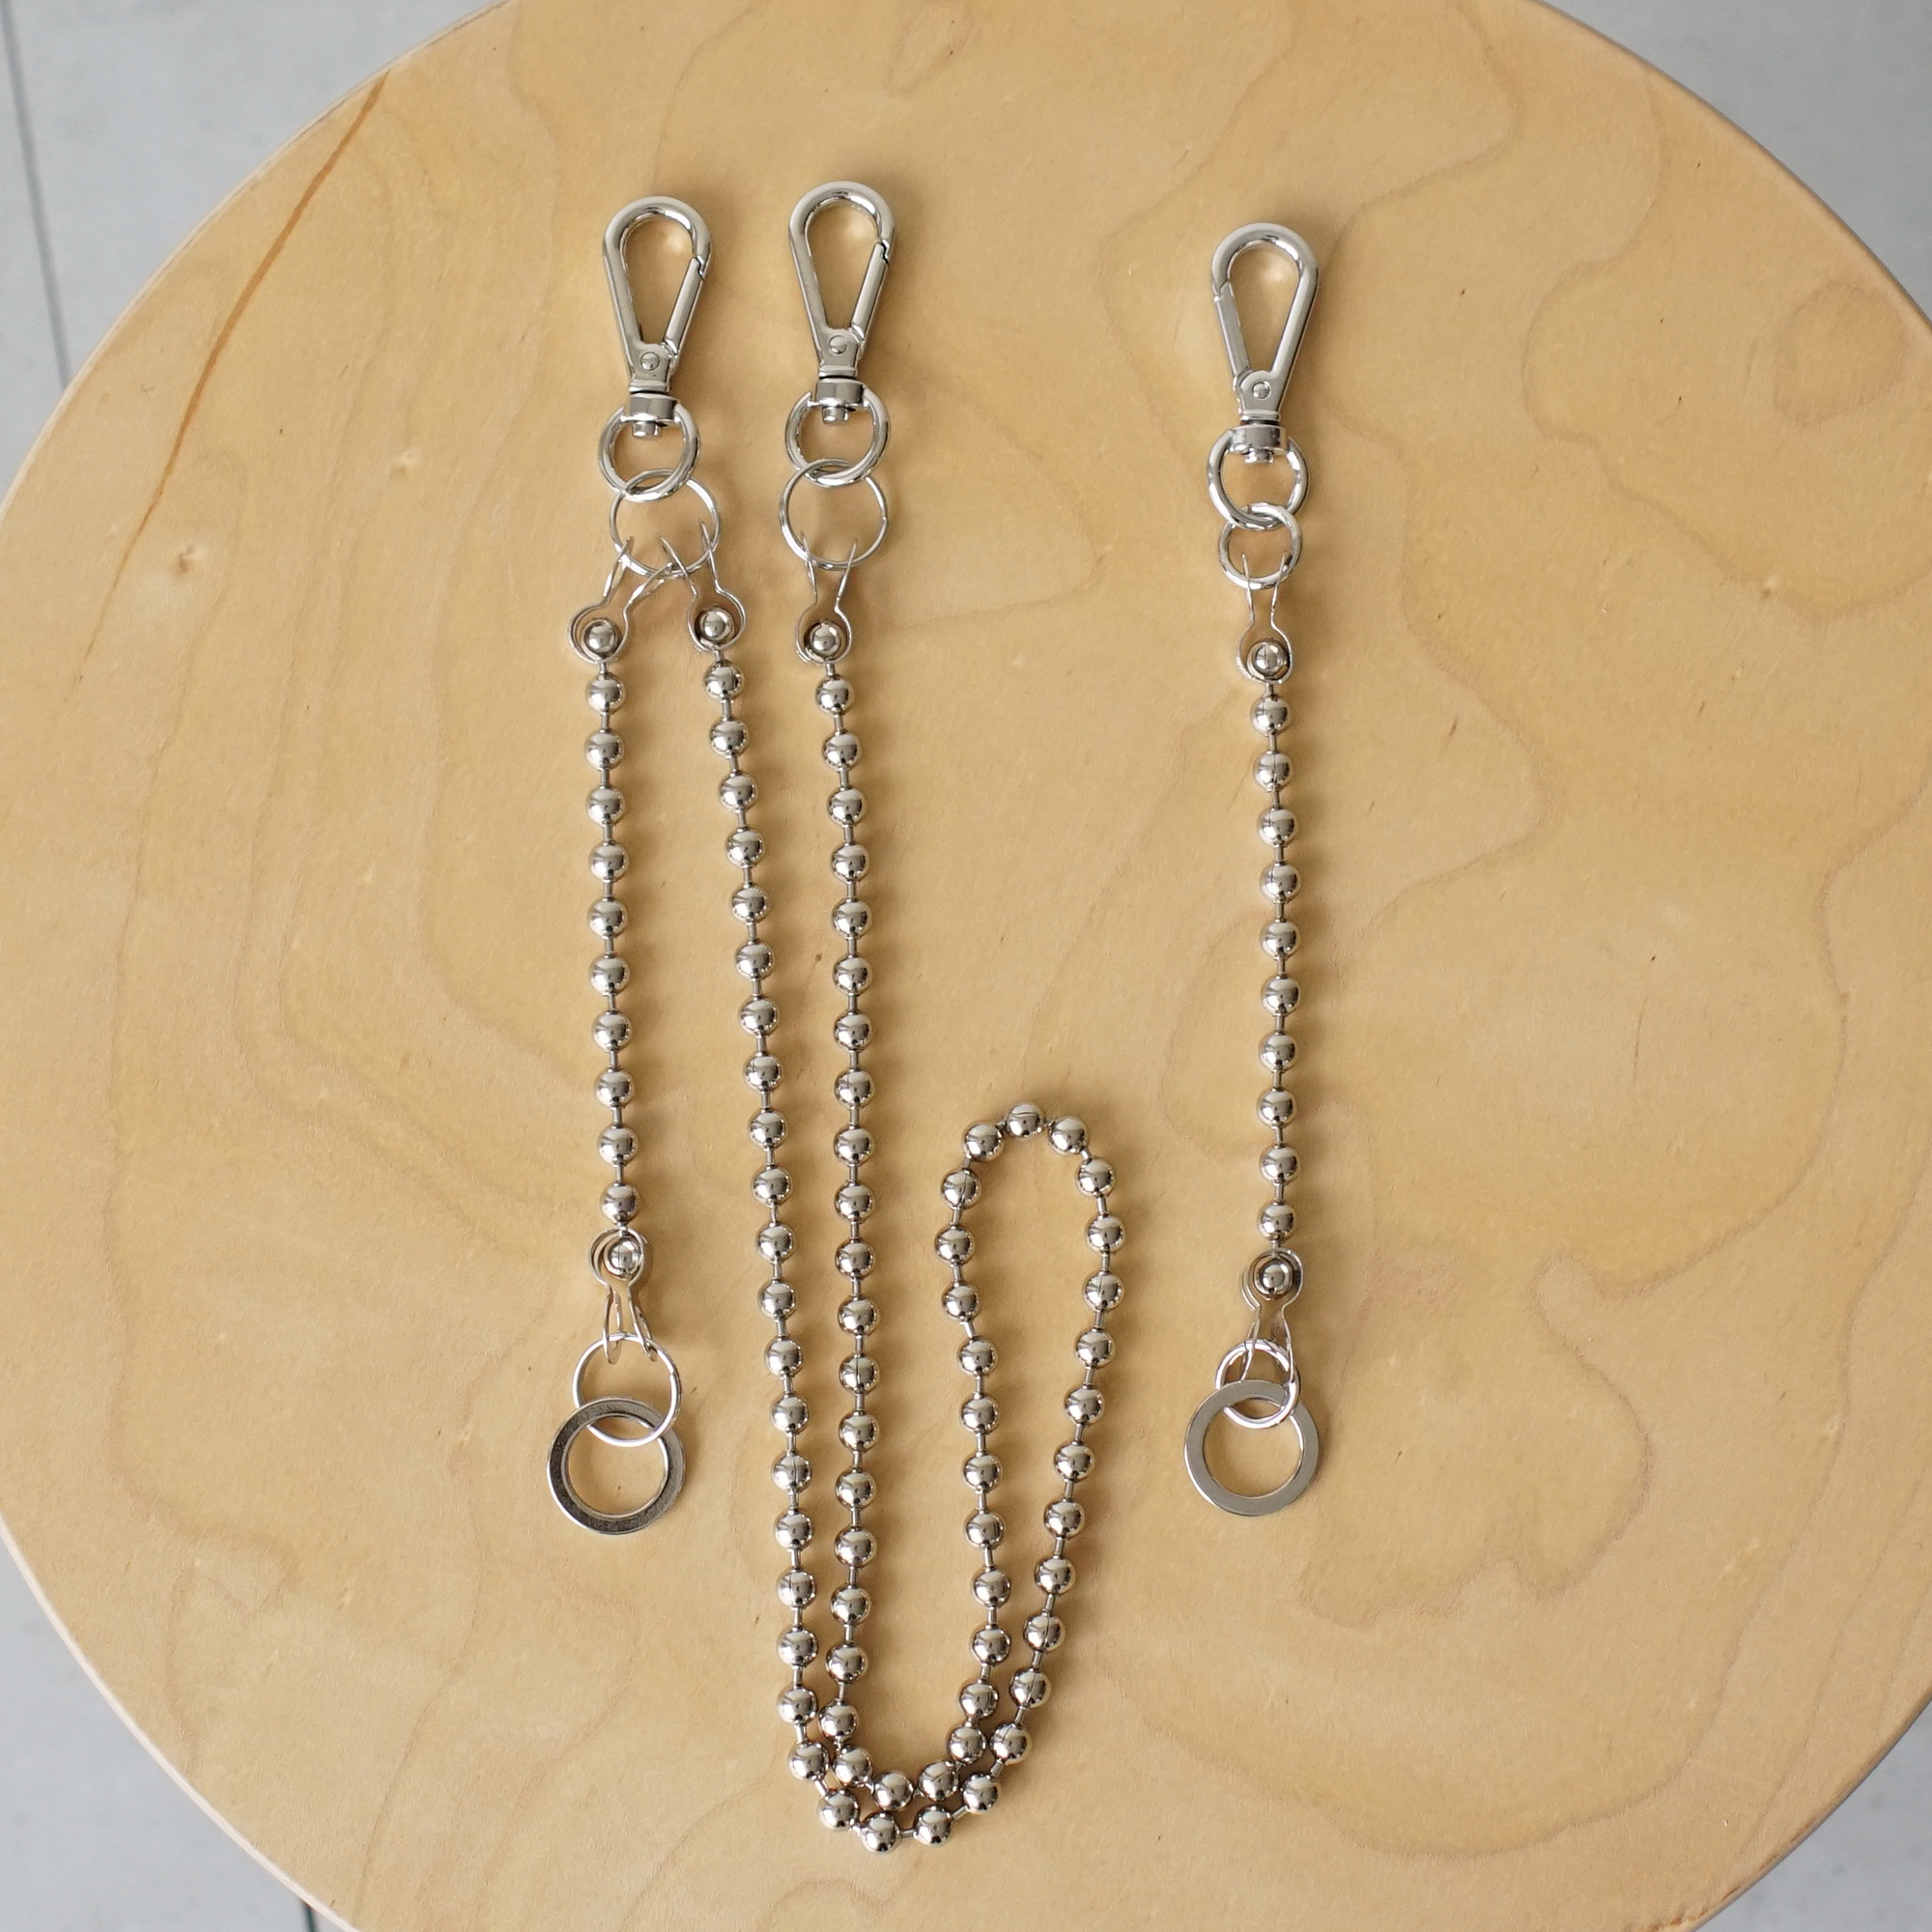 Ball Chain Keyring Set